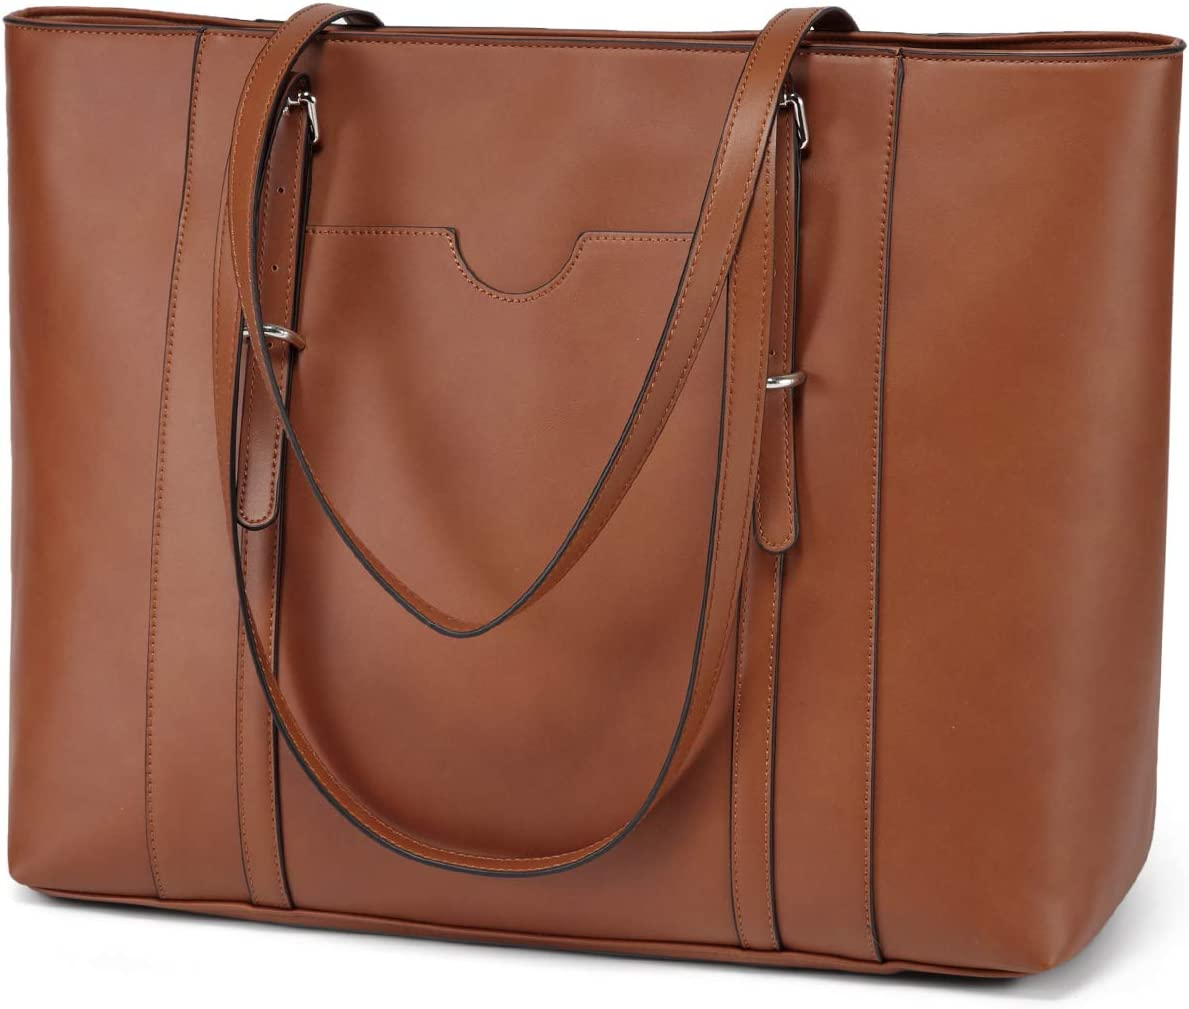 Laptop Tote Bag for Women,Vaschy PU Leather Water Resistant Travel,Work,Teacher Tote Bag Fits 15.6 inch Laptop Brown